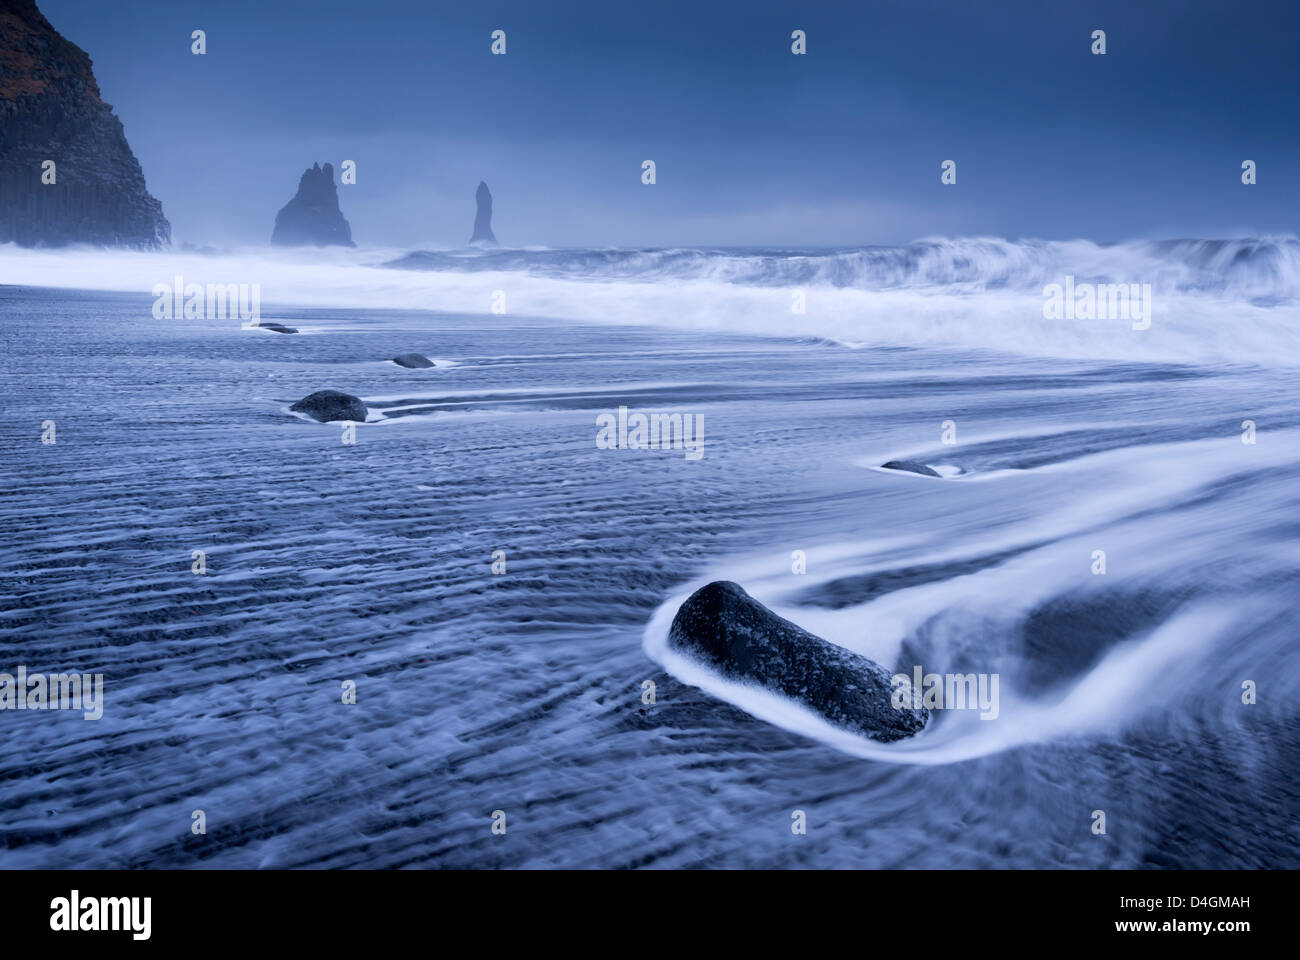 Waves rushing over black sand beach near Vik on the South coast of Iceland. Winter (January) 2013. - Stock Image